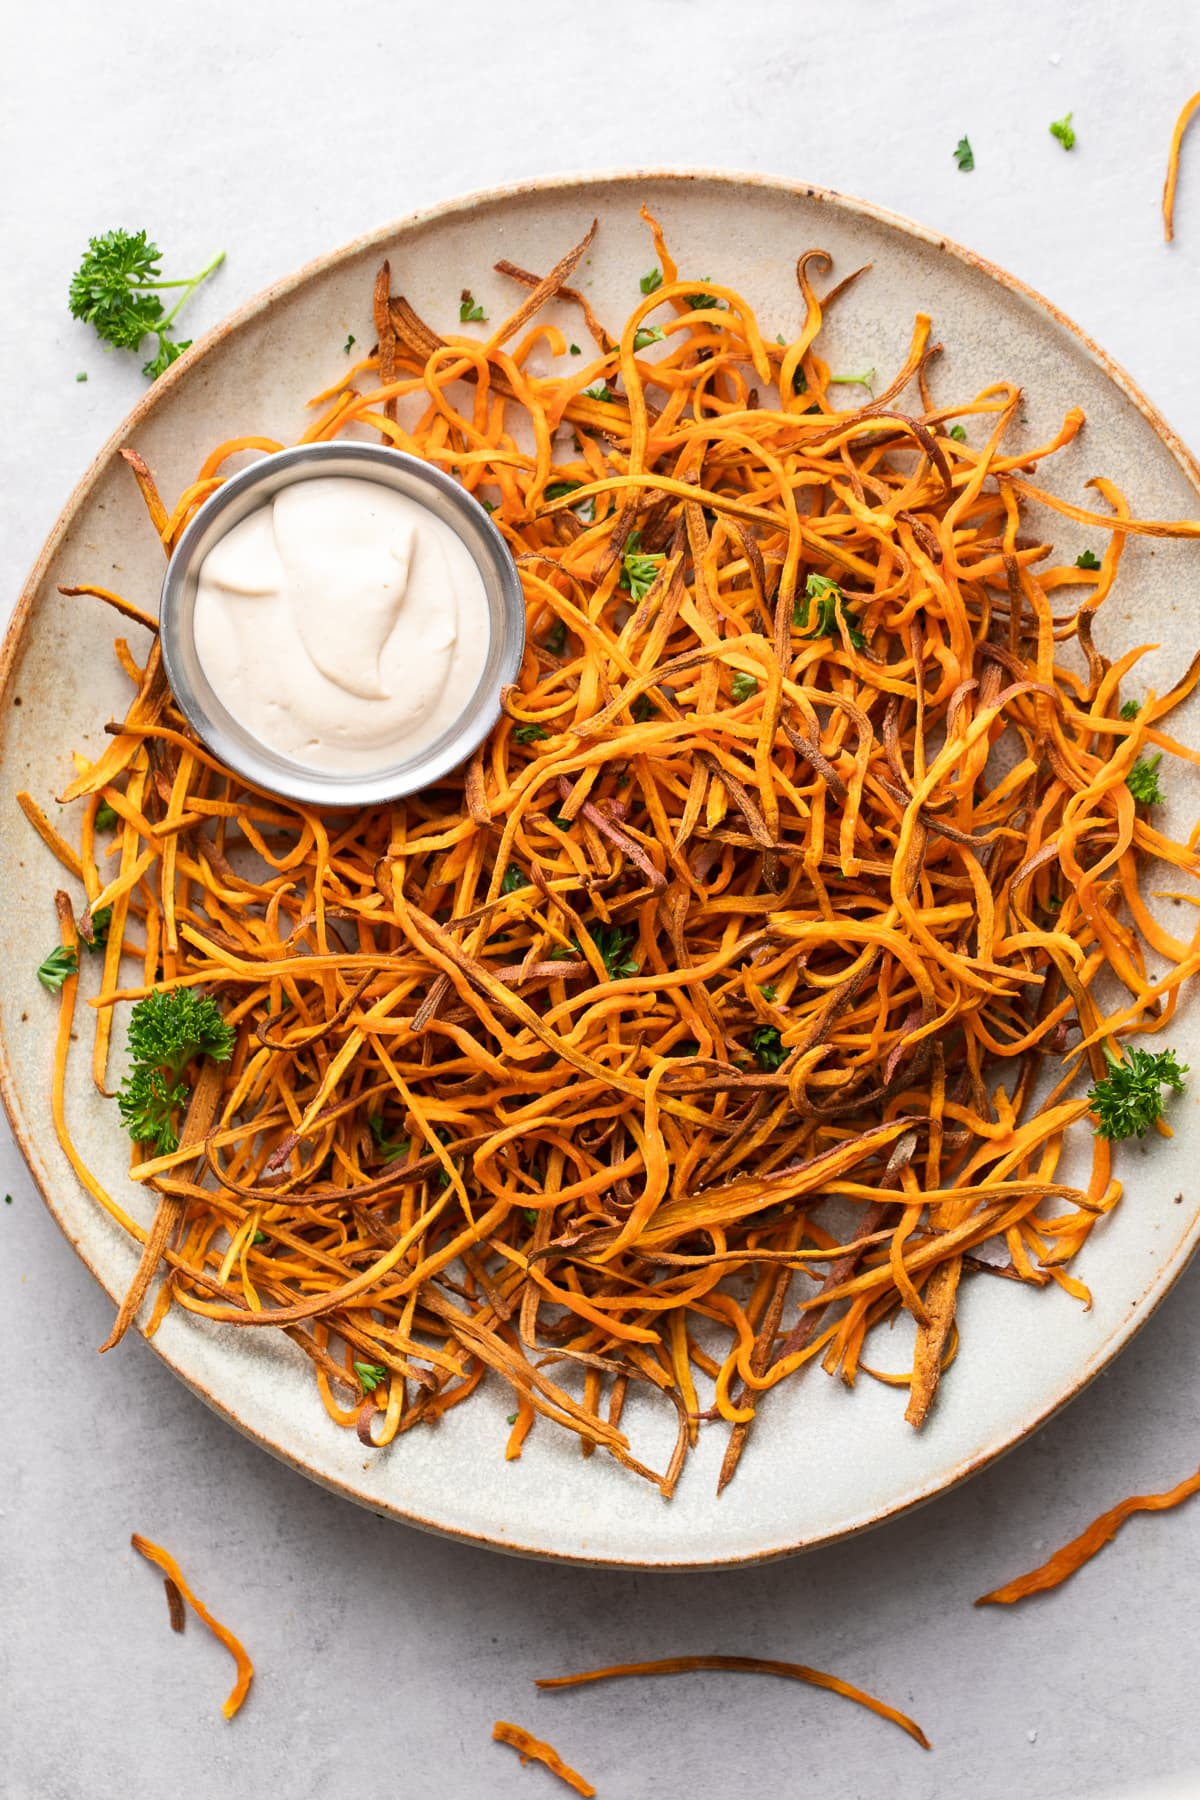 top down view of plate of freshly made baked crispy sweet potato shoestring fries curly style.